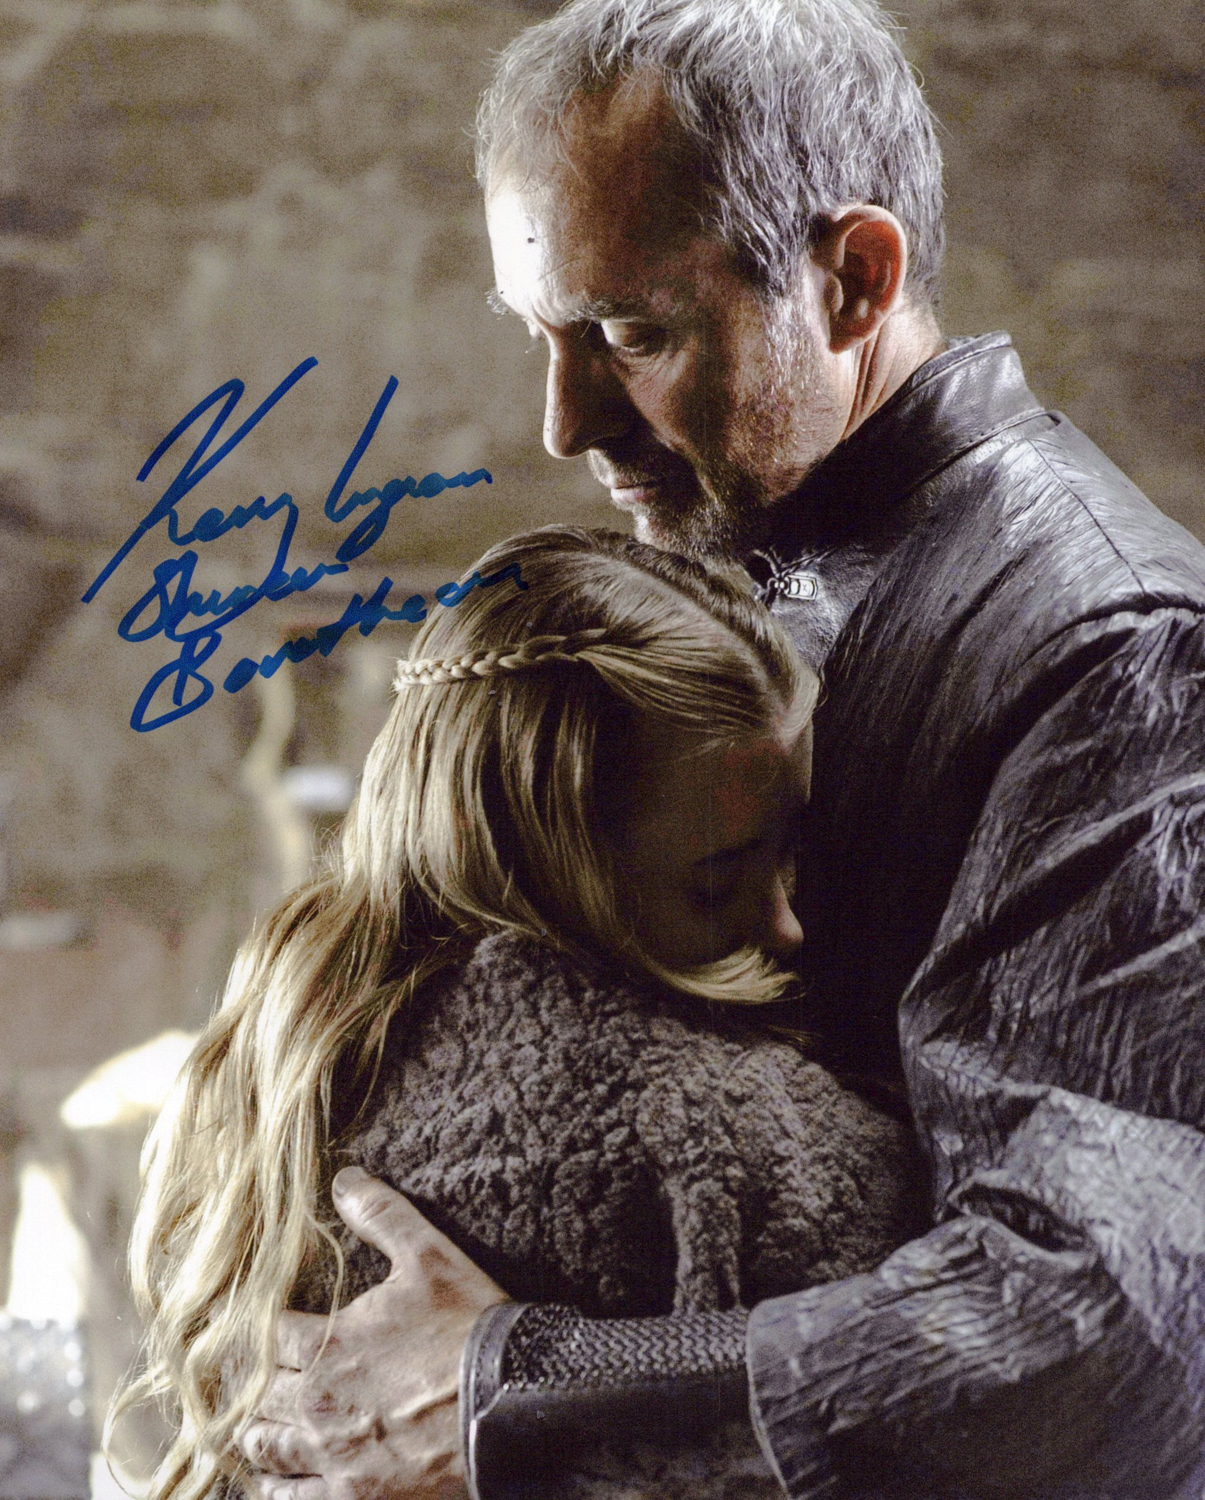 Kerry Ingram Original Autogramm auf Foto 20x25cm - Game of Thrones